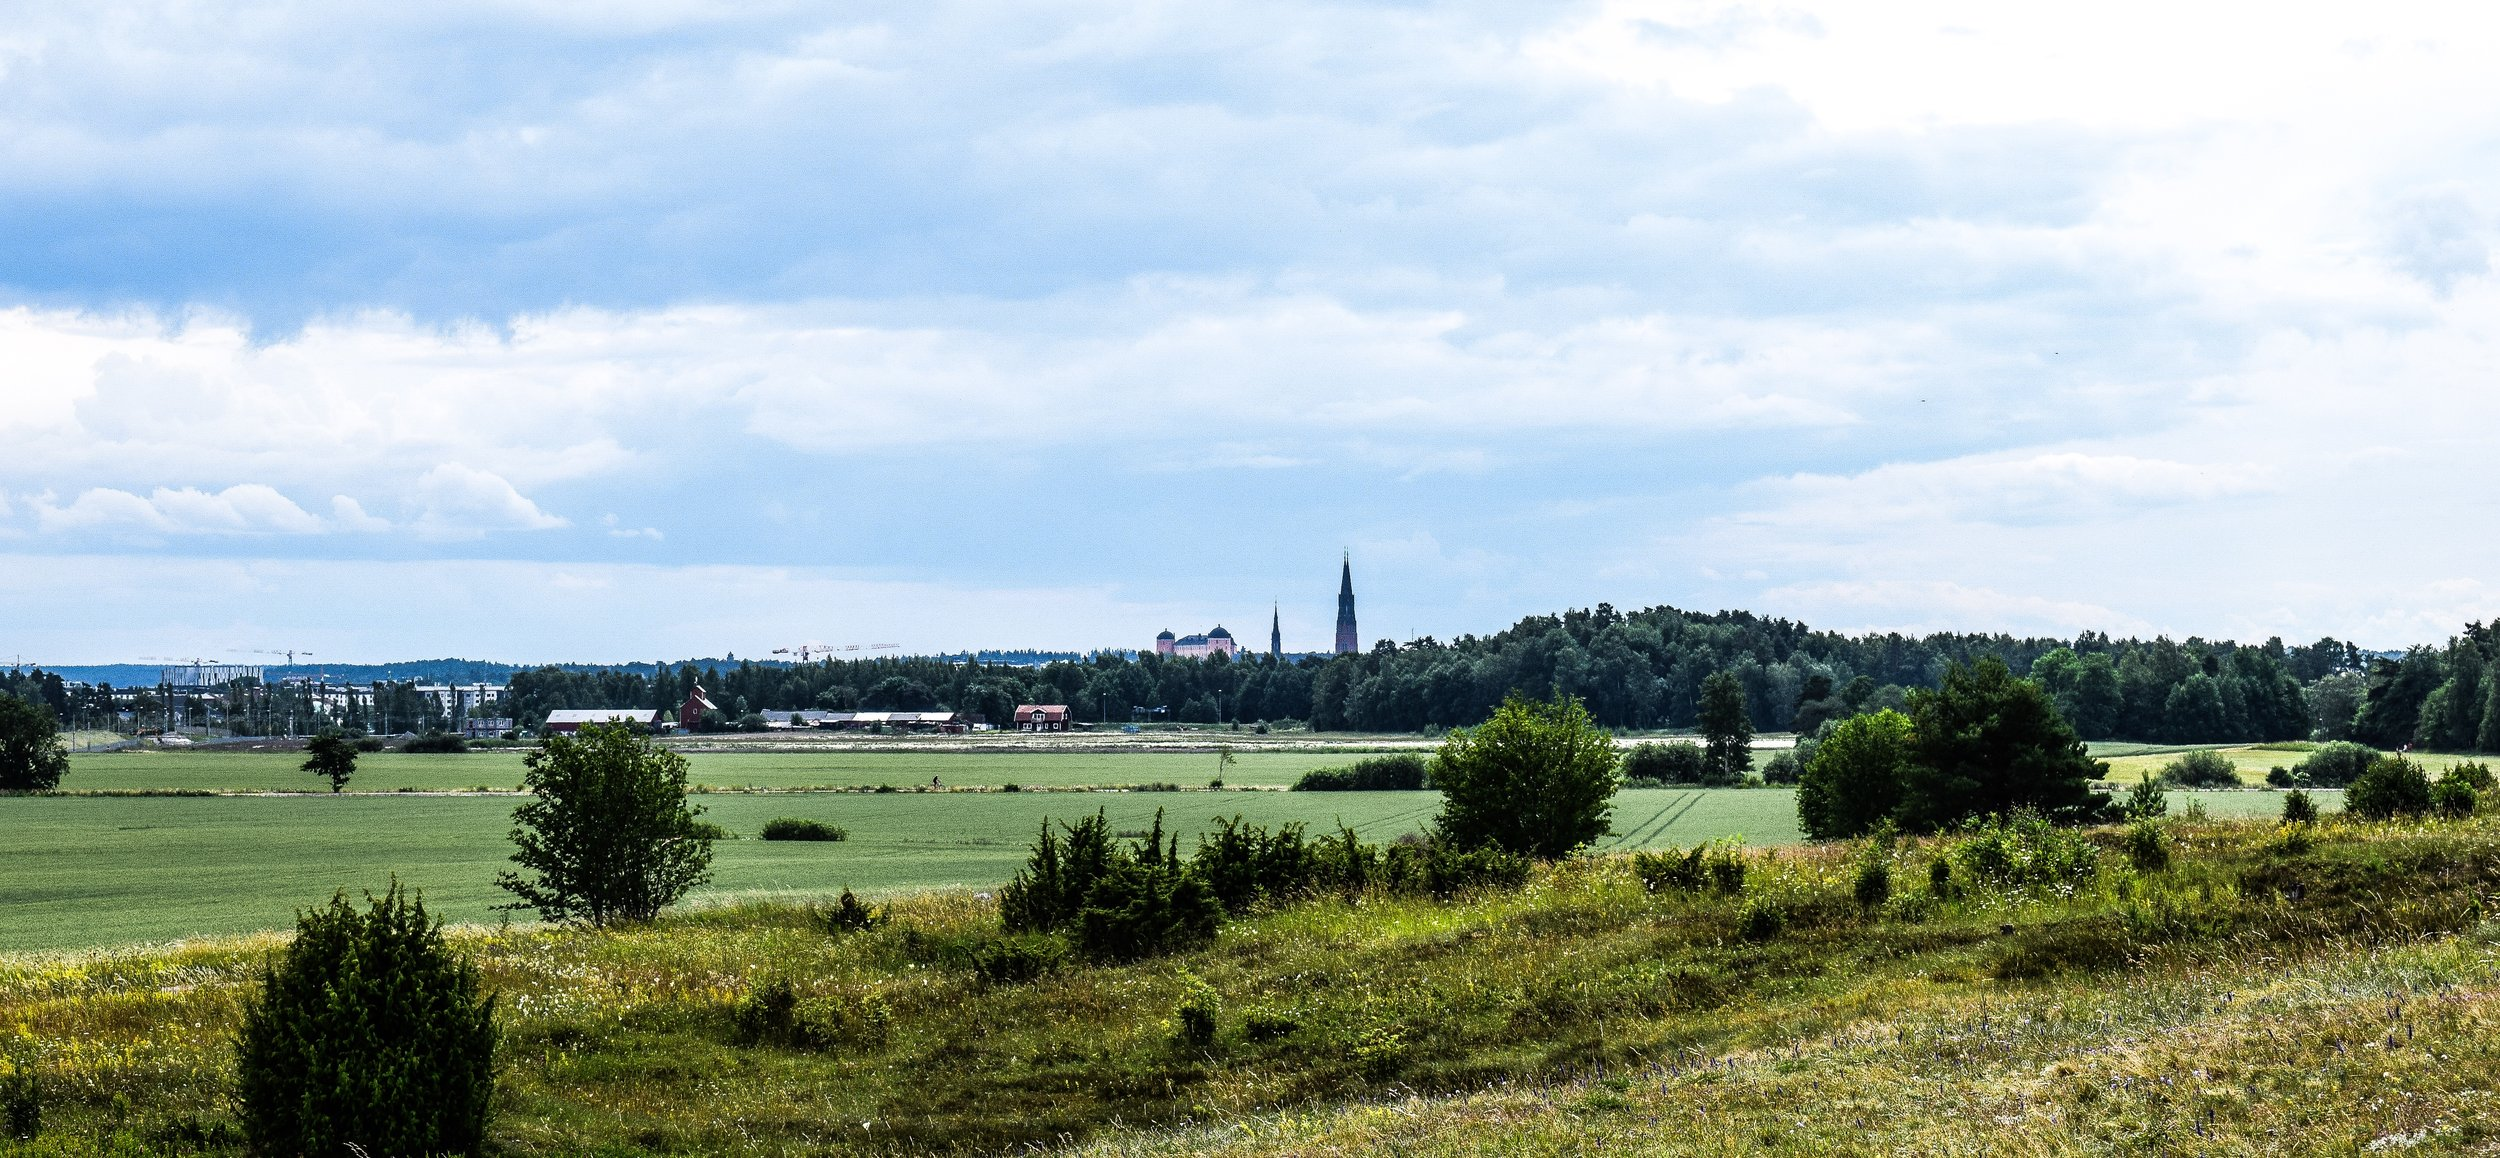 View from Gamla Uppsala - castle and the cathedral visible in the distance